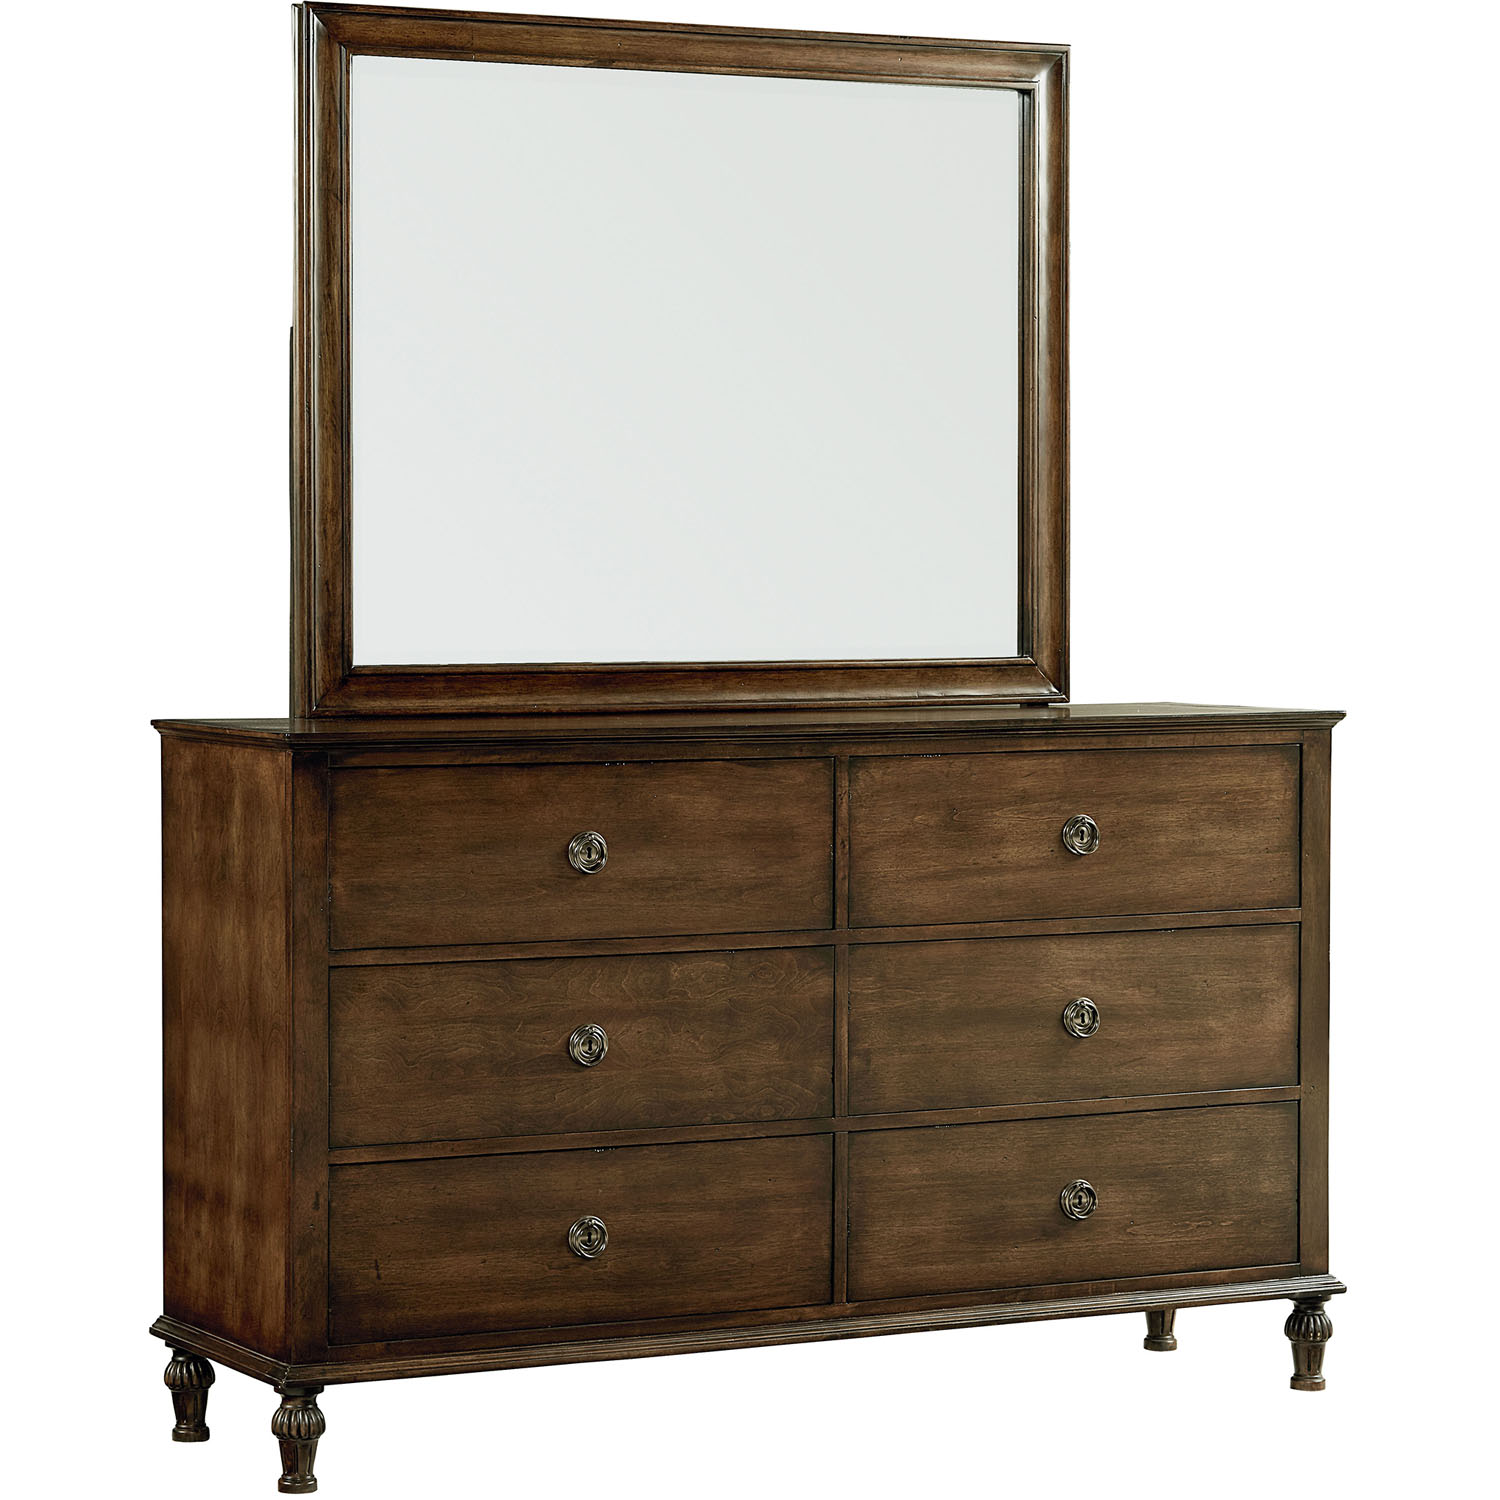 Cambridge Lexington 6-Drawer Dresser